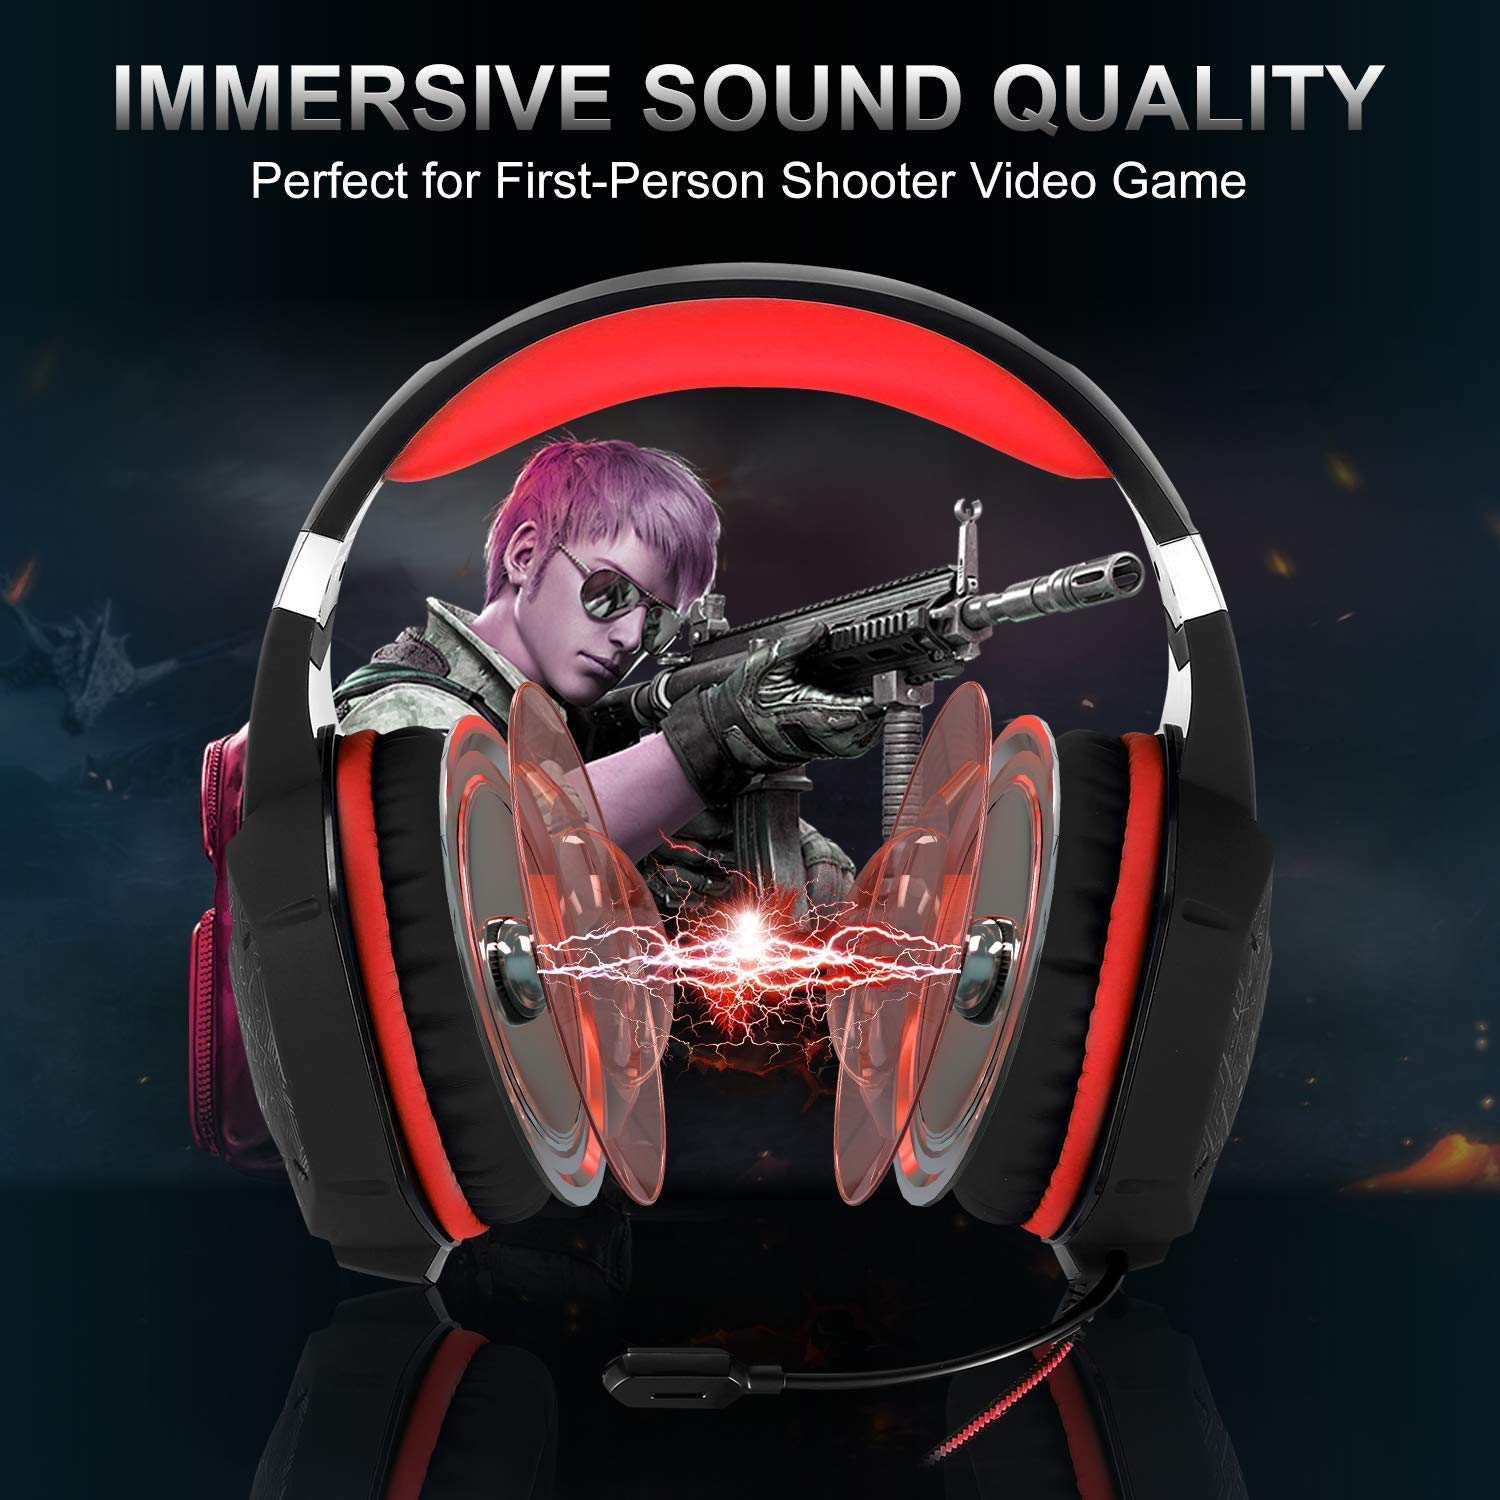 2 in 1 Wireless /& Wired Optical Mice with USB 6000 DPI Adjustable Gaming Mouse Wireless Rechargeable Laptop Grip Ergonomic Optical PC Computer Gaming Mice with Fire Button